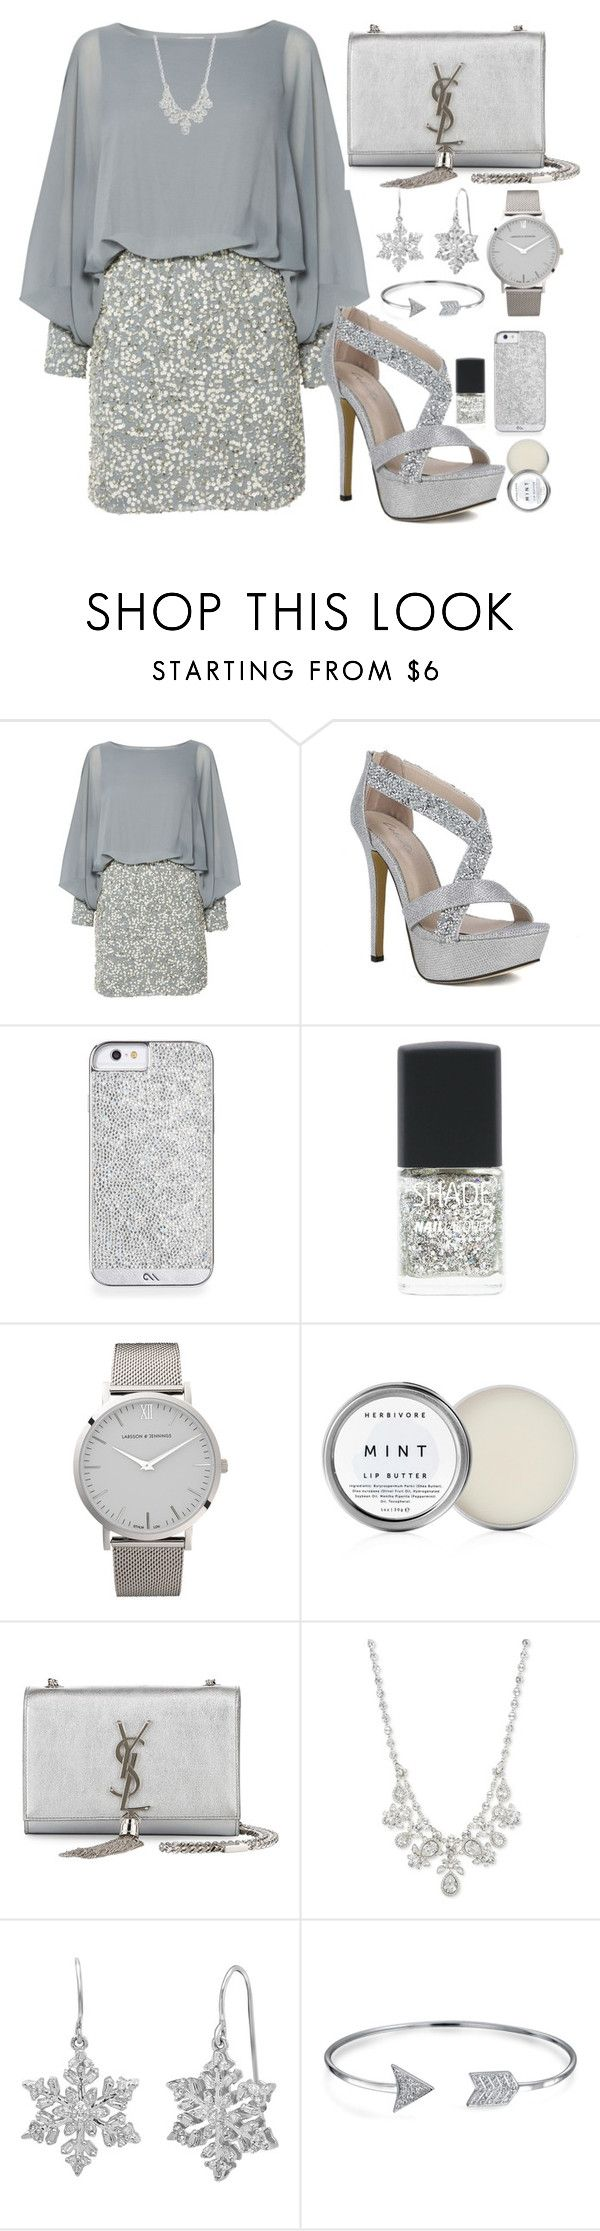 """""""silver"""" by azizanisafitri ❤ liked on Polyvore featuring Lace & Beads, SHADE Collection, Larsson & Jennings, Herbivore, Yves Saint Laurent, Givenchy, Amanda Rose Collection and Bling Jewelry"""